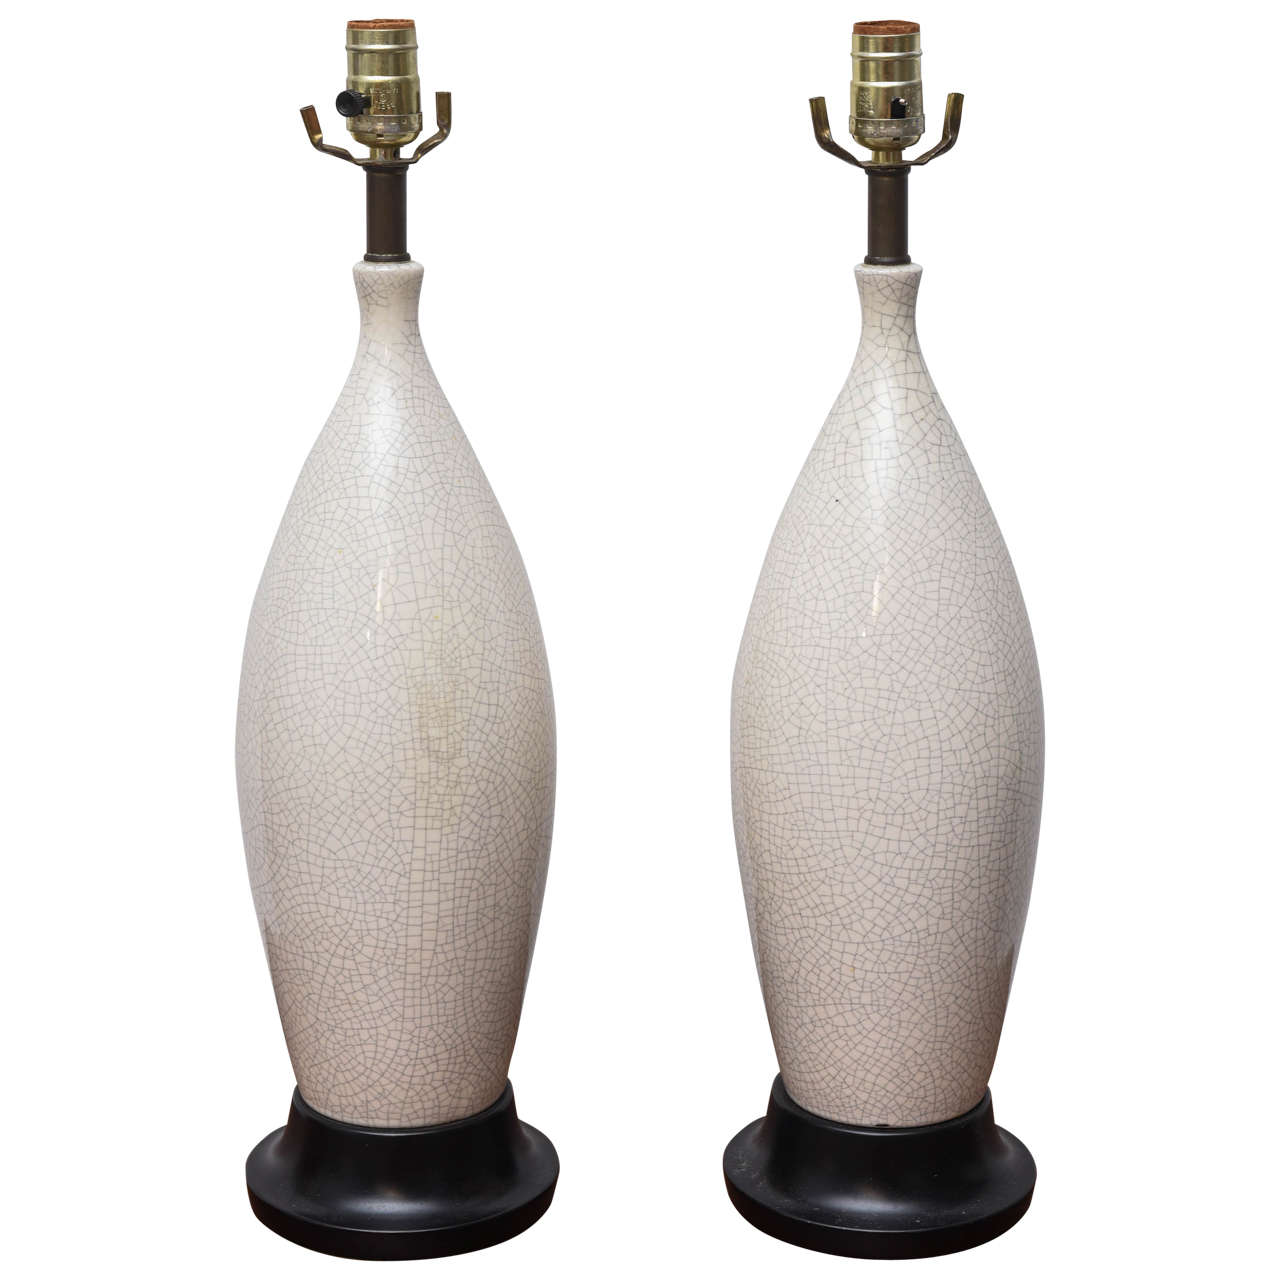 Pair Of MCM Crackle Glazed Ceramic Lamps, USA 1960s For Sale